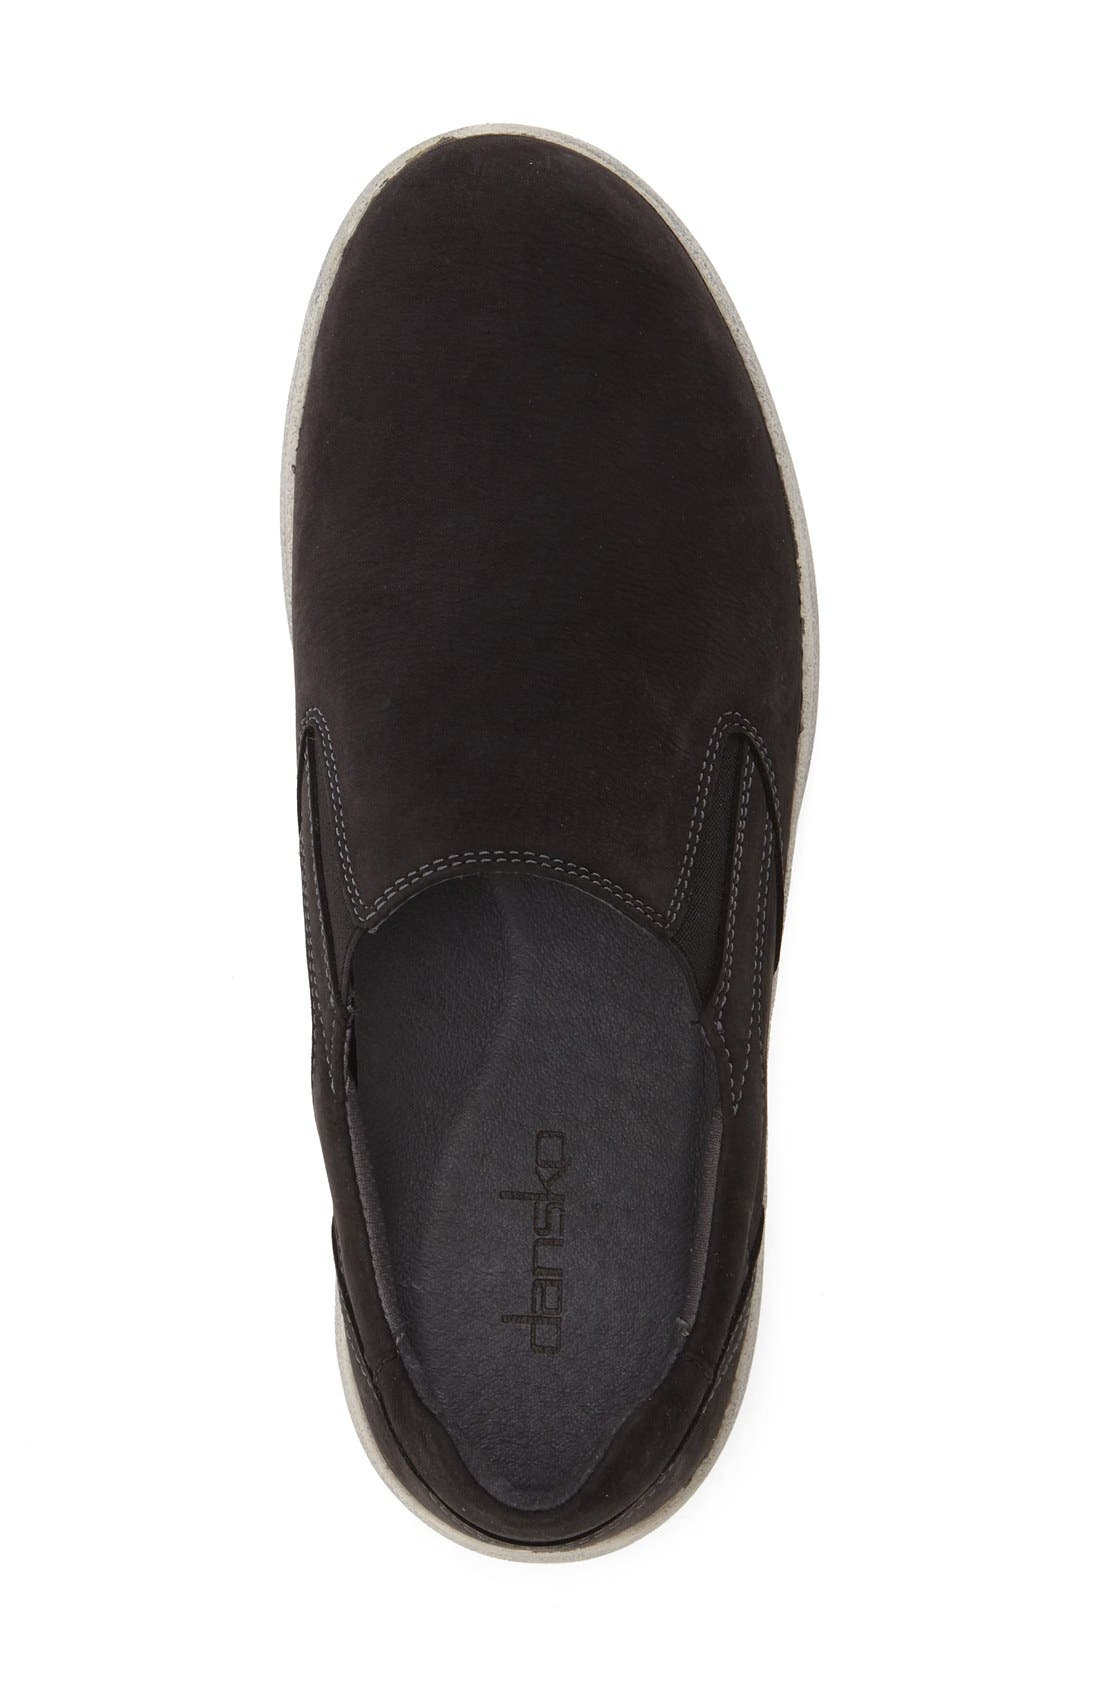 'Viktor' Water Resistant Slip-On Sneaker,                             Alternate thumbnail 3, color,                             BLACK MILLED NUBUCK LEATHER